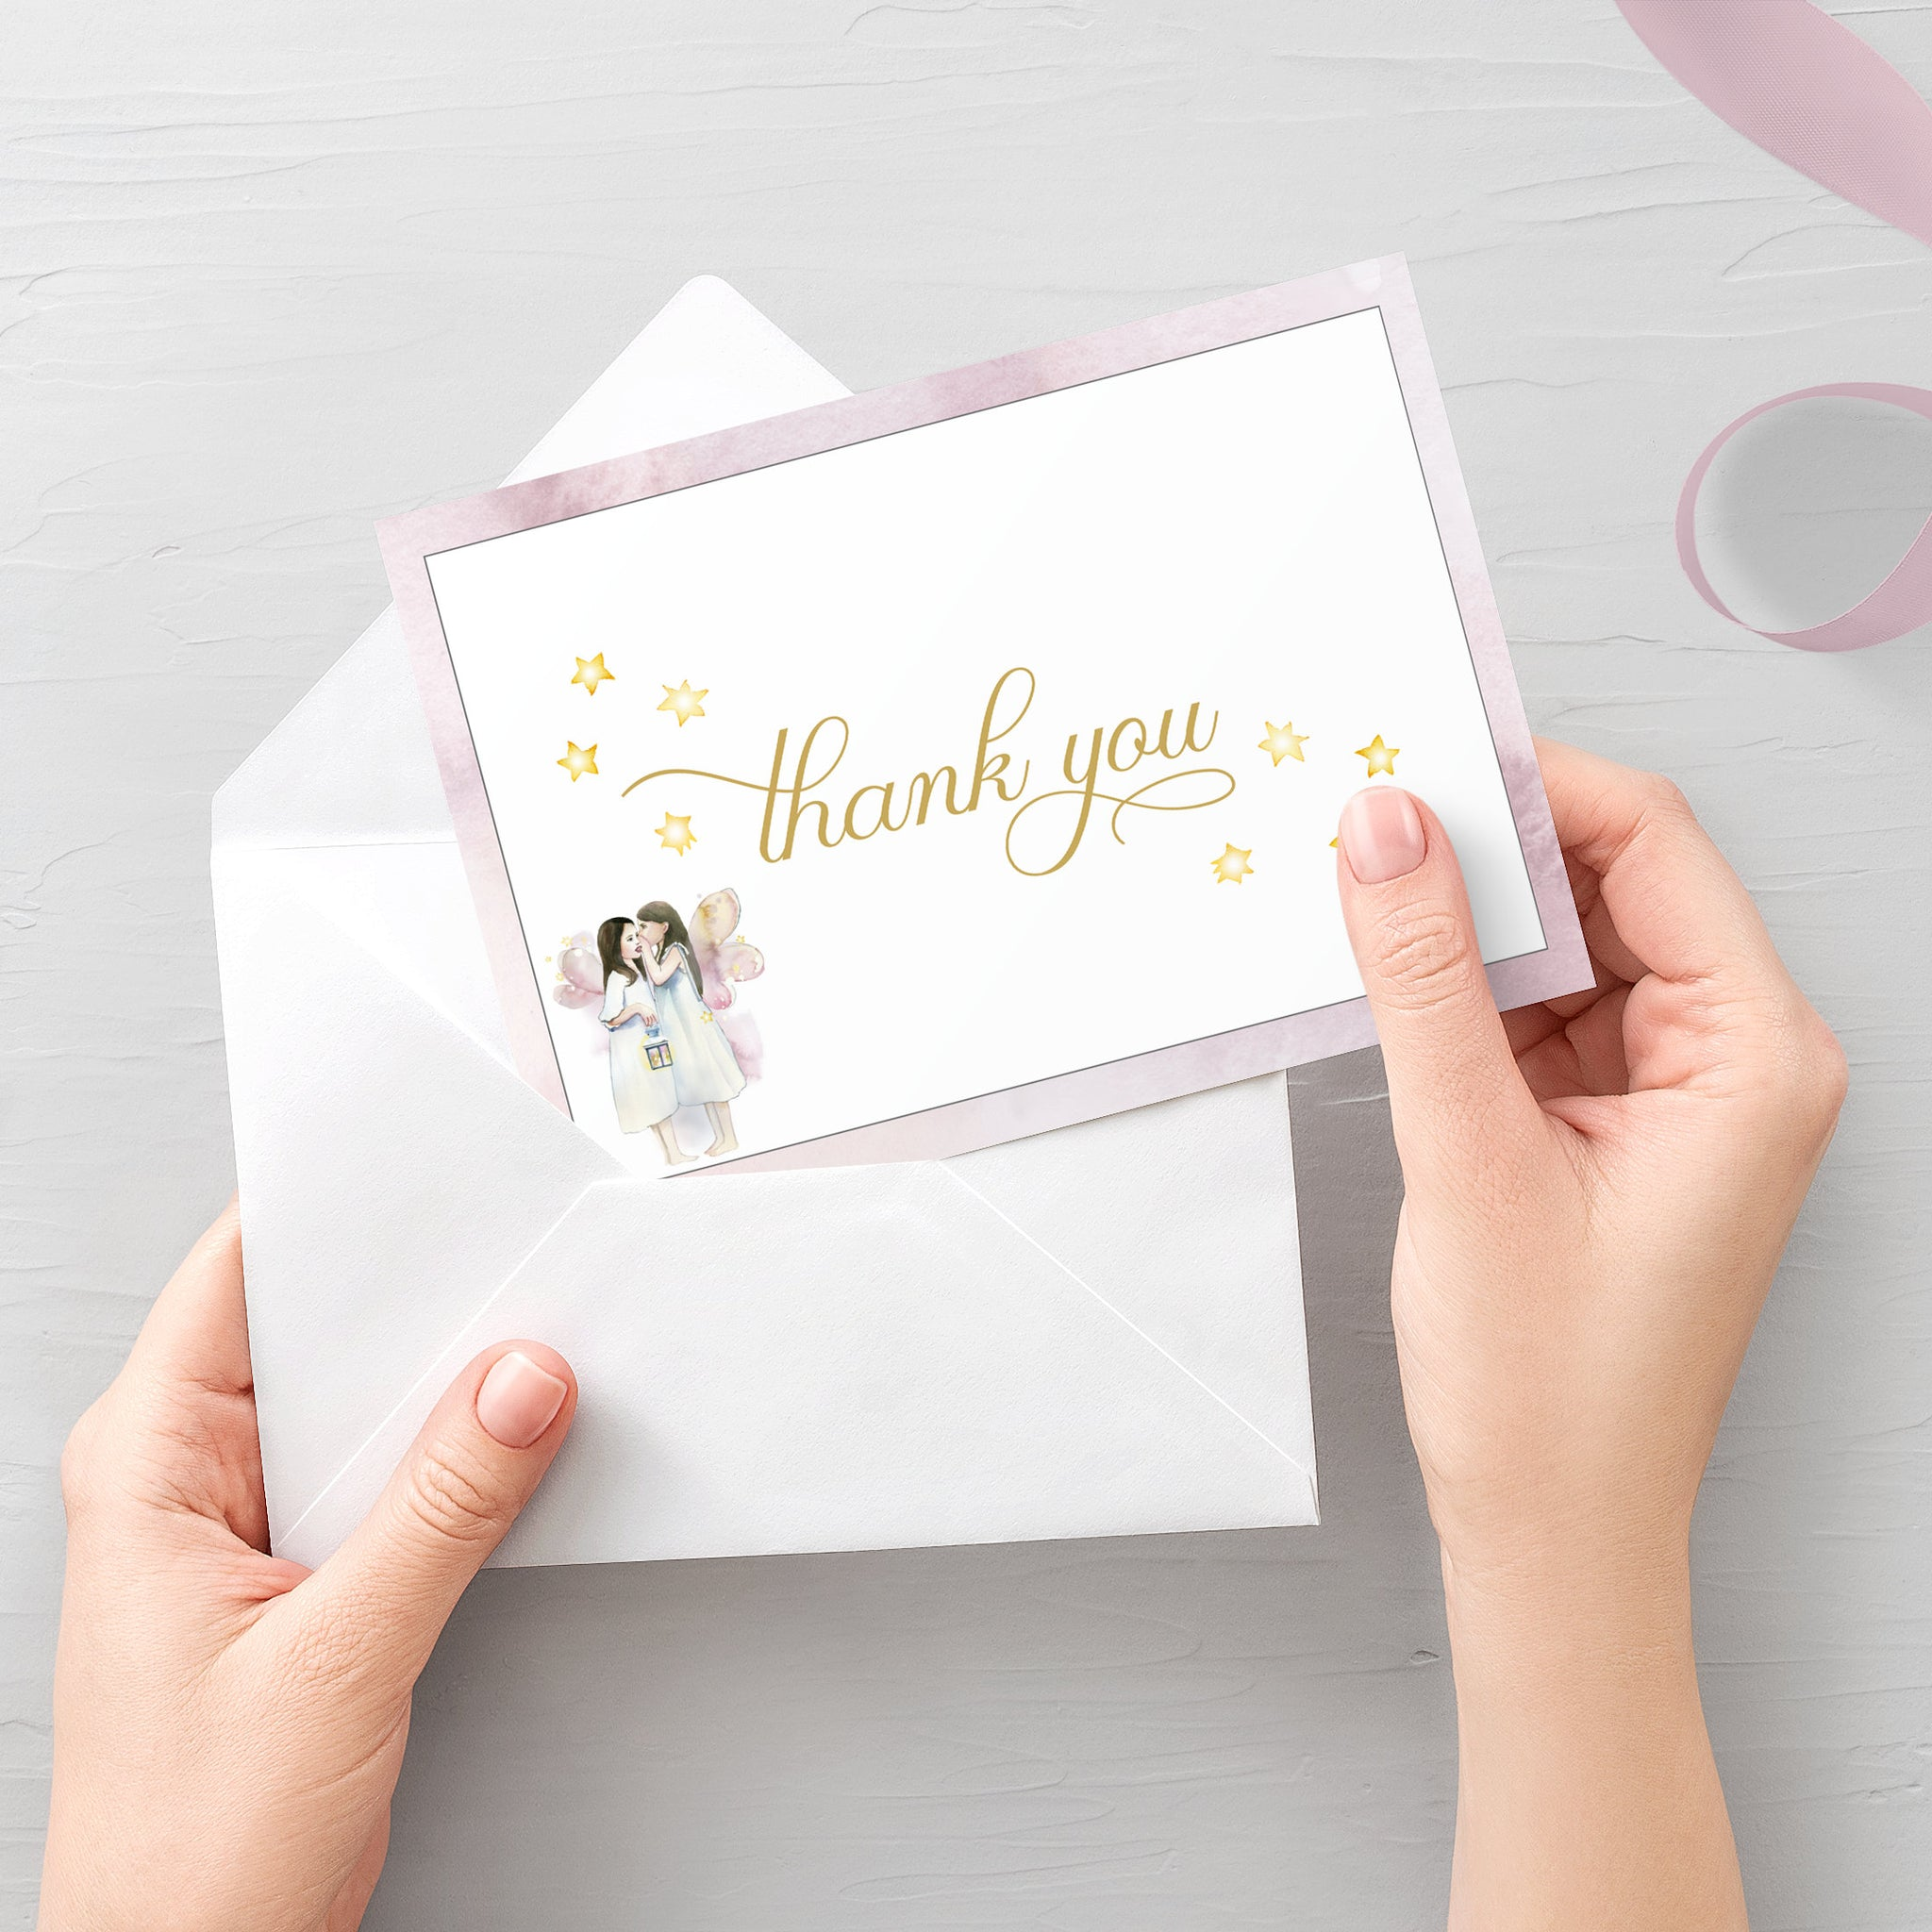 FairyThank You Card Printable, Fairy Thank You Note, Folded and Flat Cards 5X3.5, Editable Template DIGITAL DOWNLOAD - D300